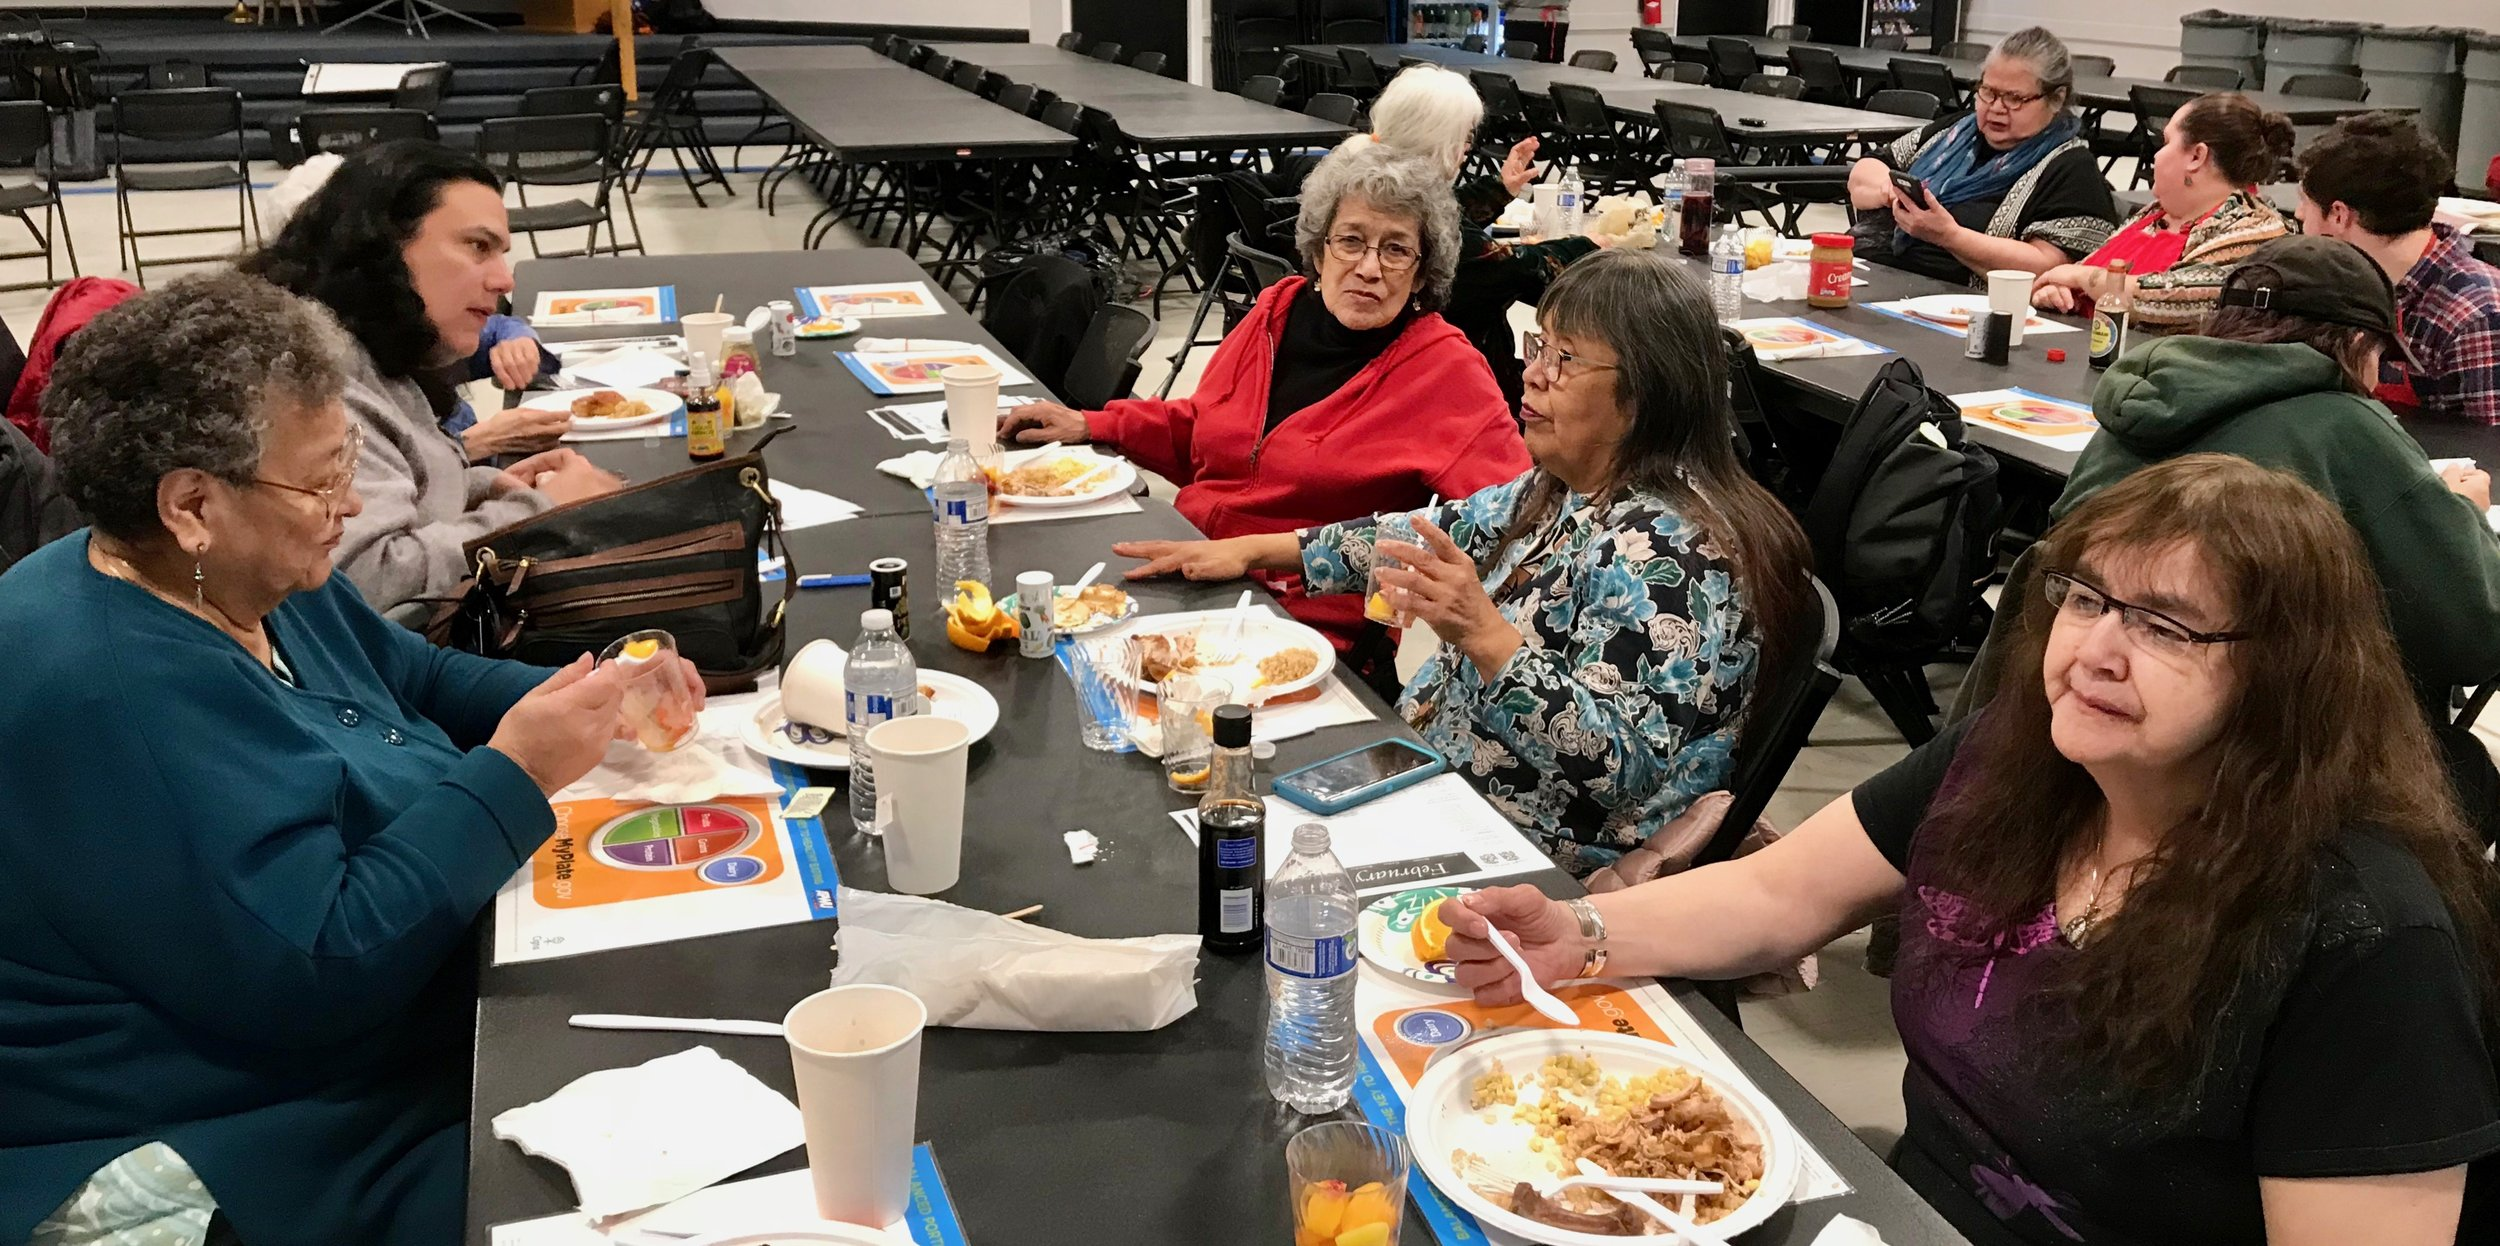 Elder's Lunch at Central Council Community Center, February 2018